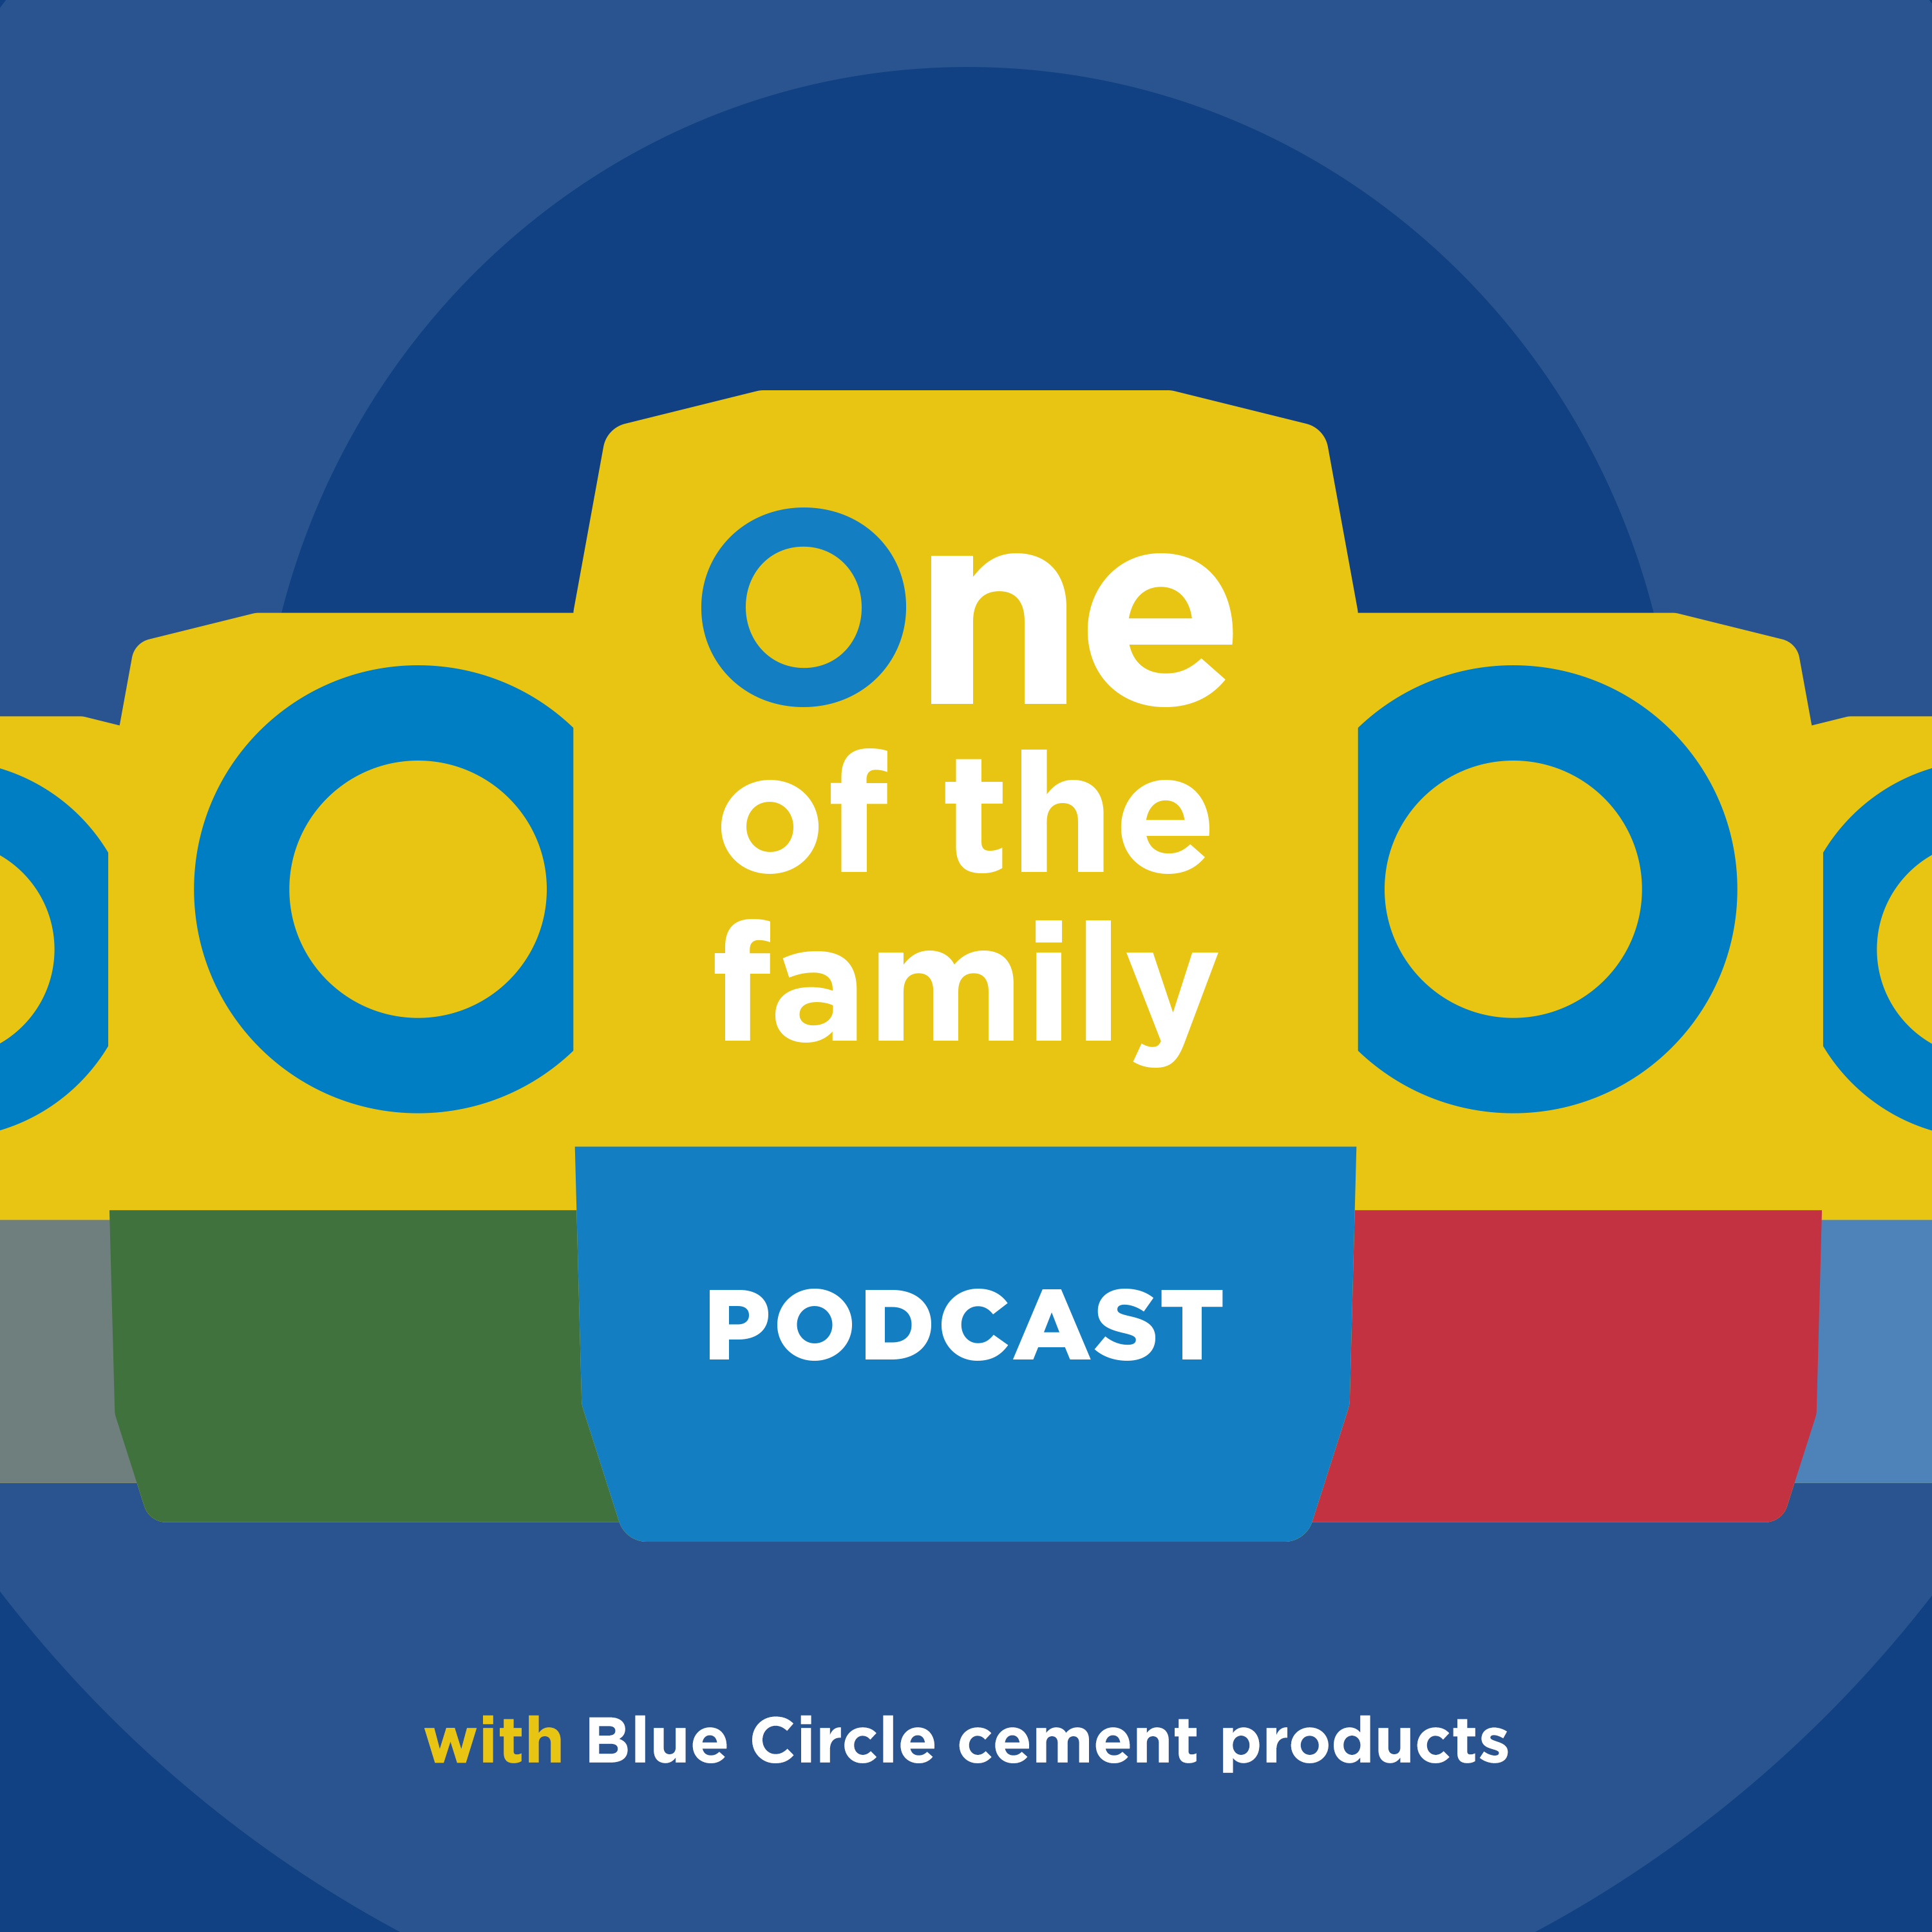 Tarmac launches the Blue Circle 'One of the Family' podcast